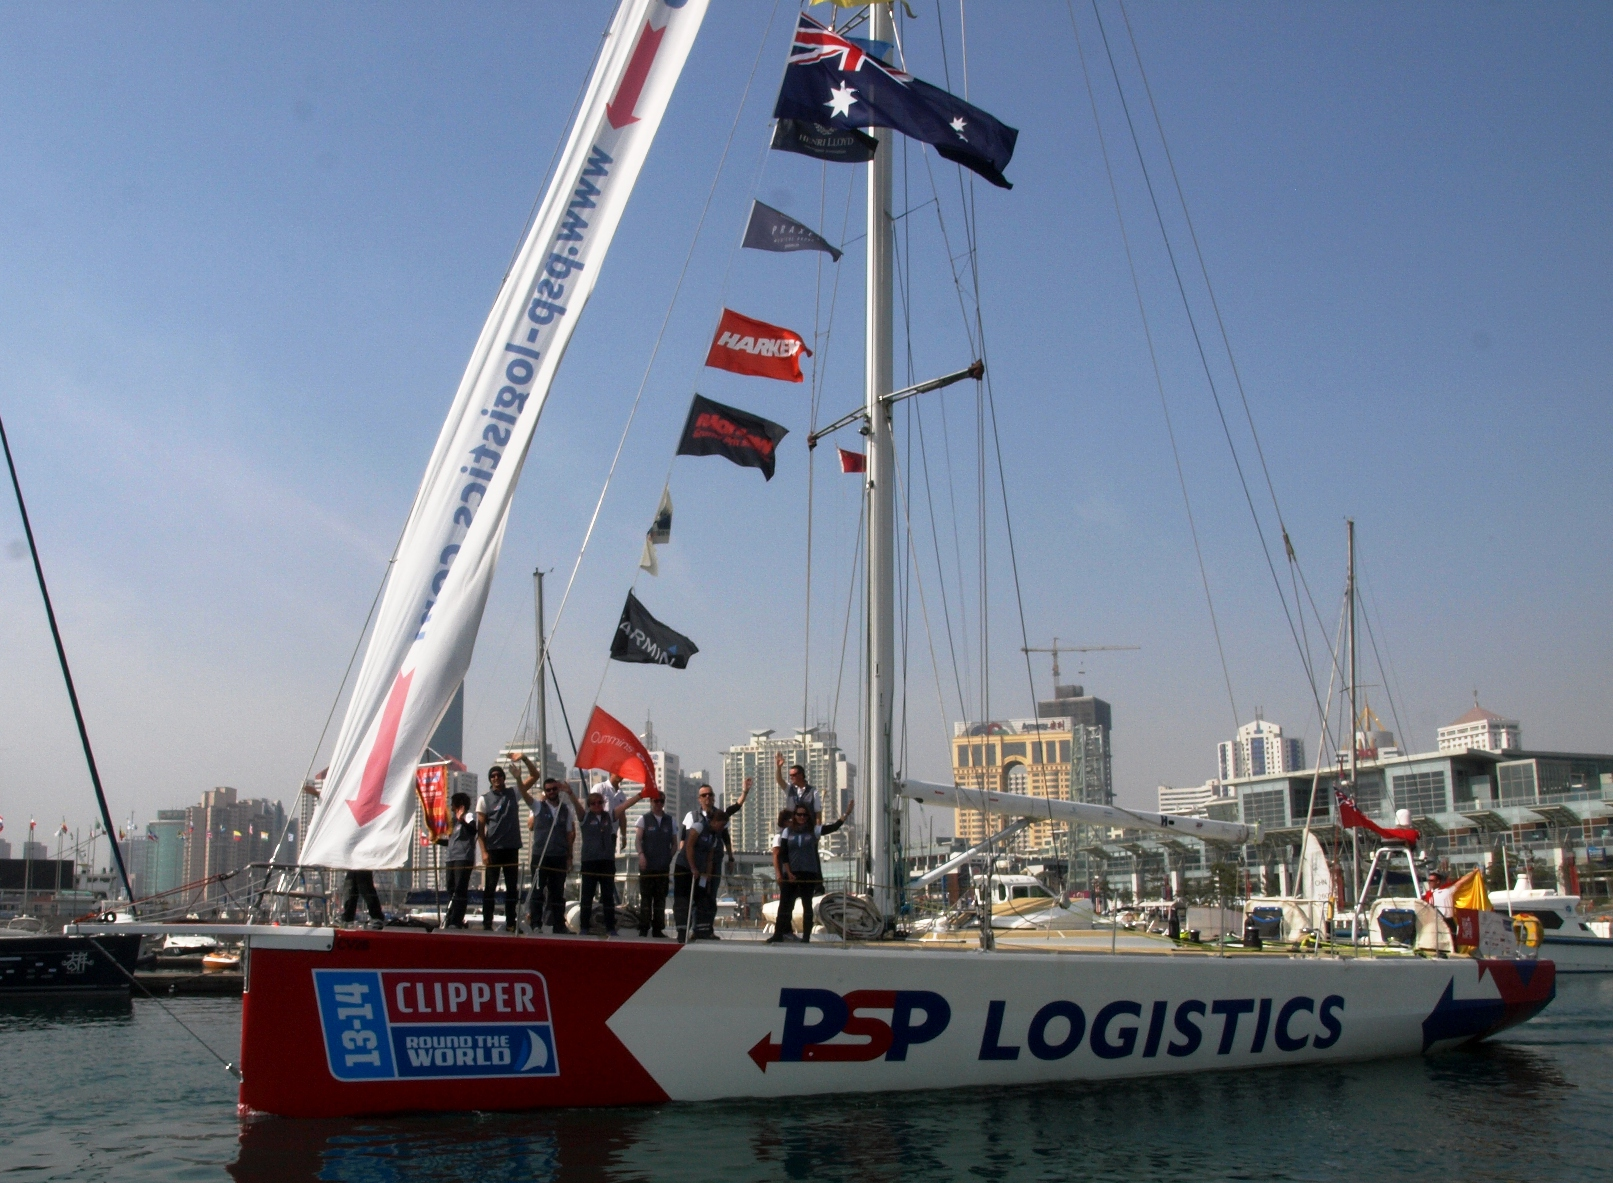 PSP Logistics leaves China for start of Leg 6  photo courtesy Clipper Round the World Race